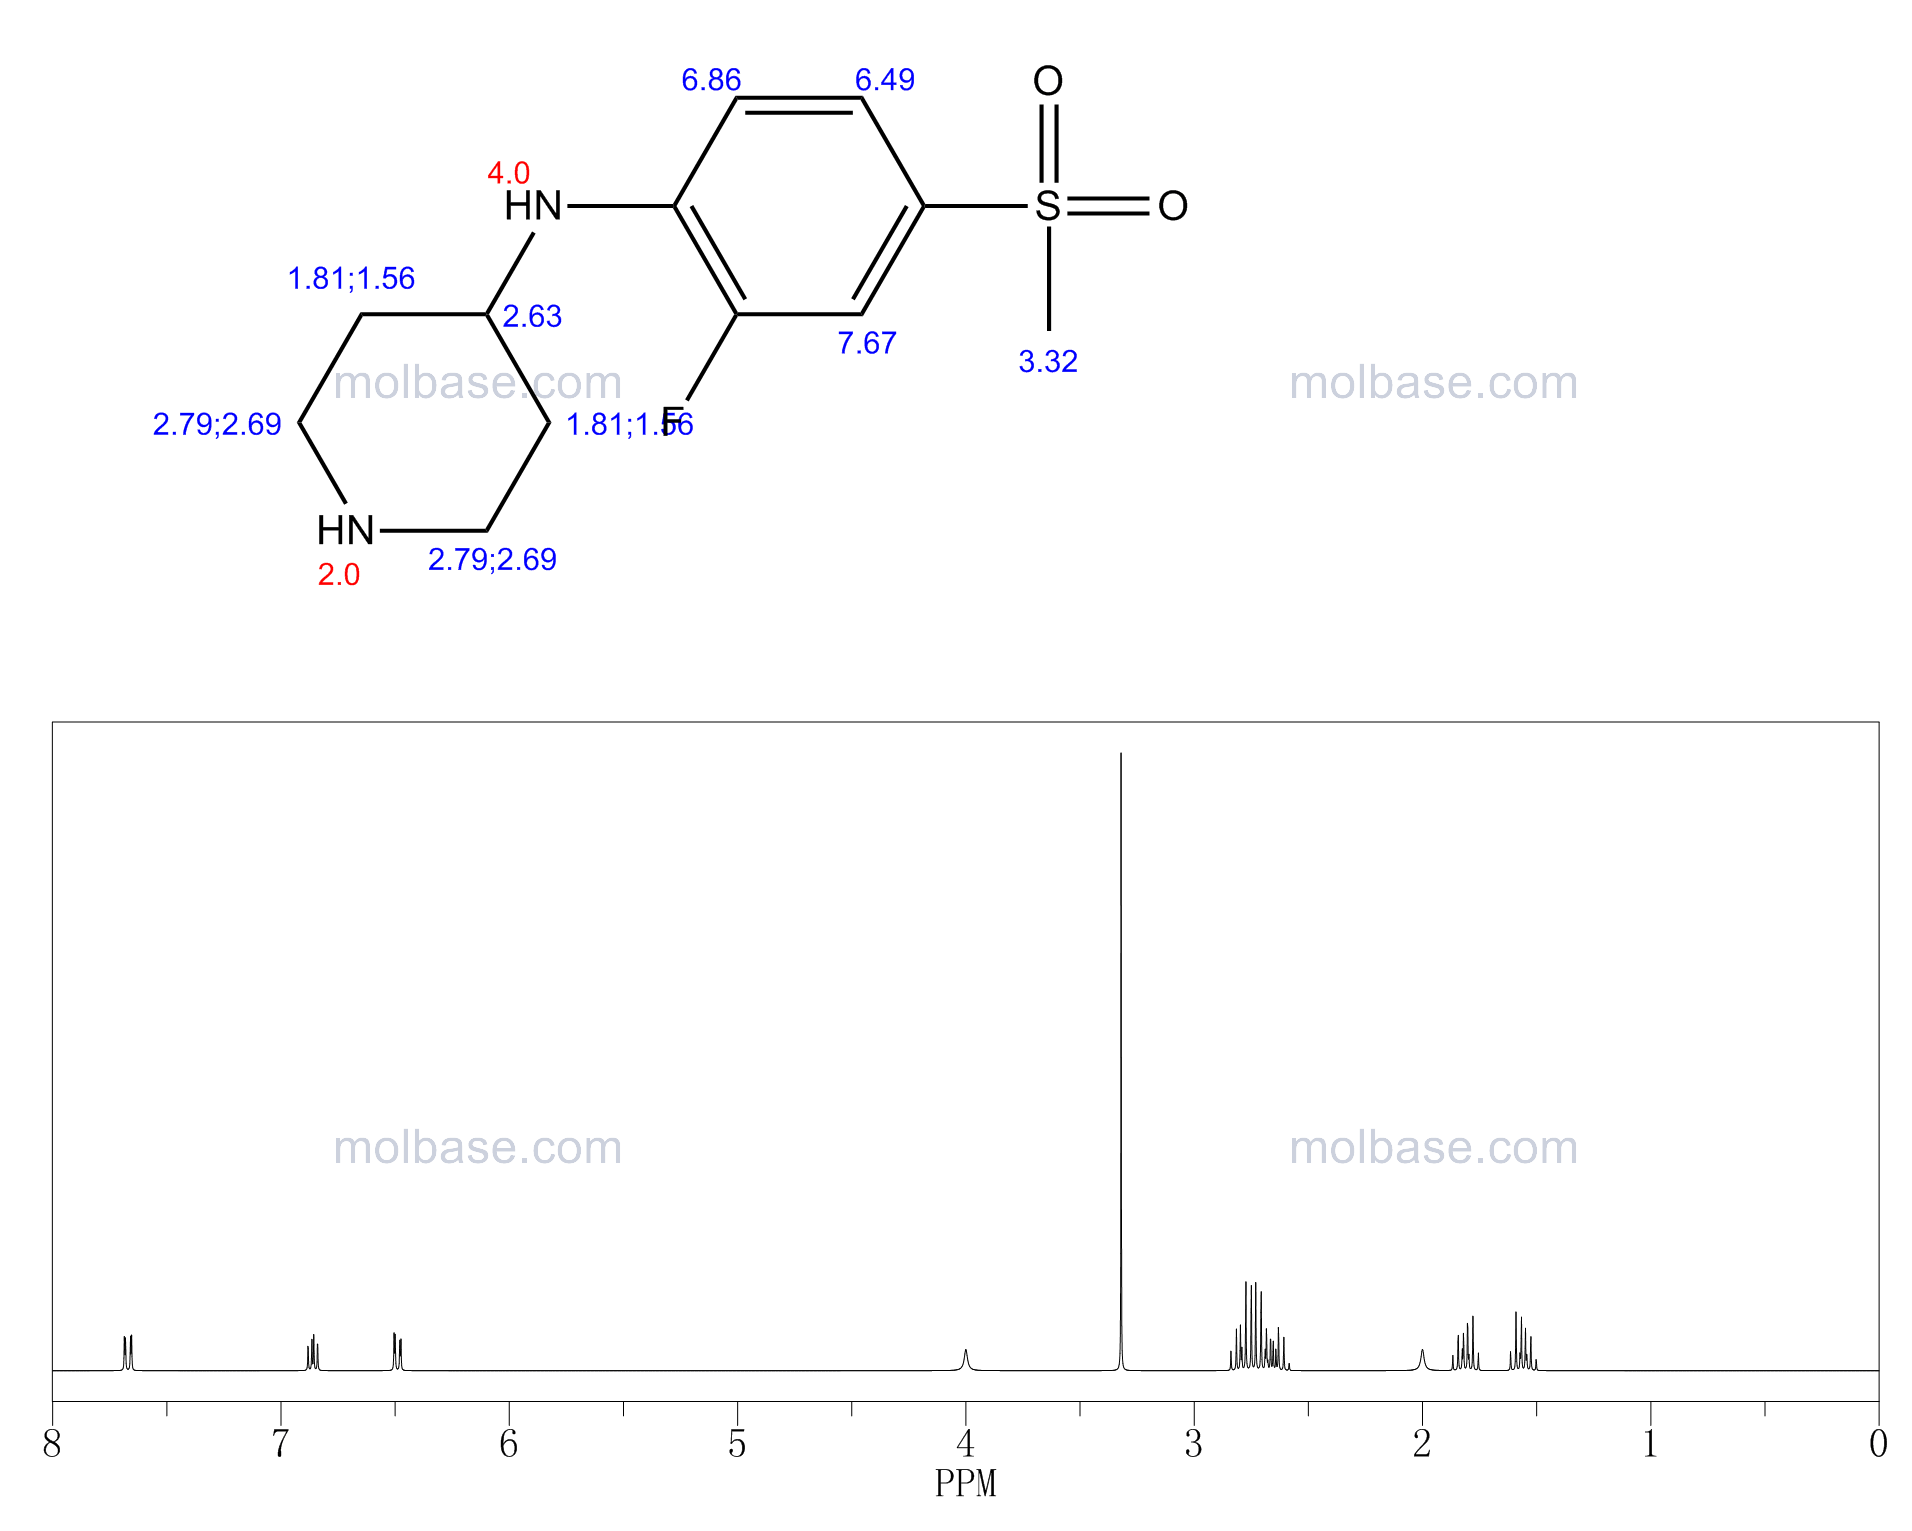 N-[2-Fluoro-4-(methylsulfonyl)phenyl]-4-piperidinamine NMR spectra analysis, Chemical CAS NO. 849924-89-6 NMR spectral analysis, N-[2-Fluoro-4-(methylsulfonyl)phenyl]-4-piperidinamine C-NMR spectrum